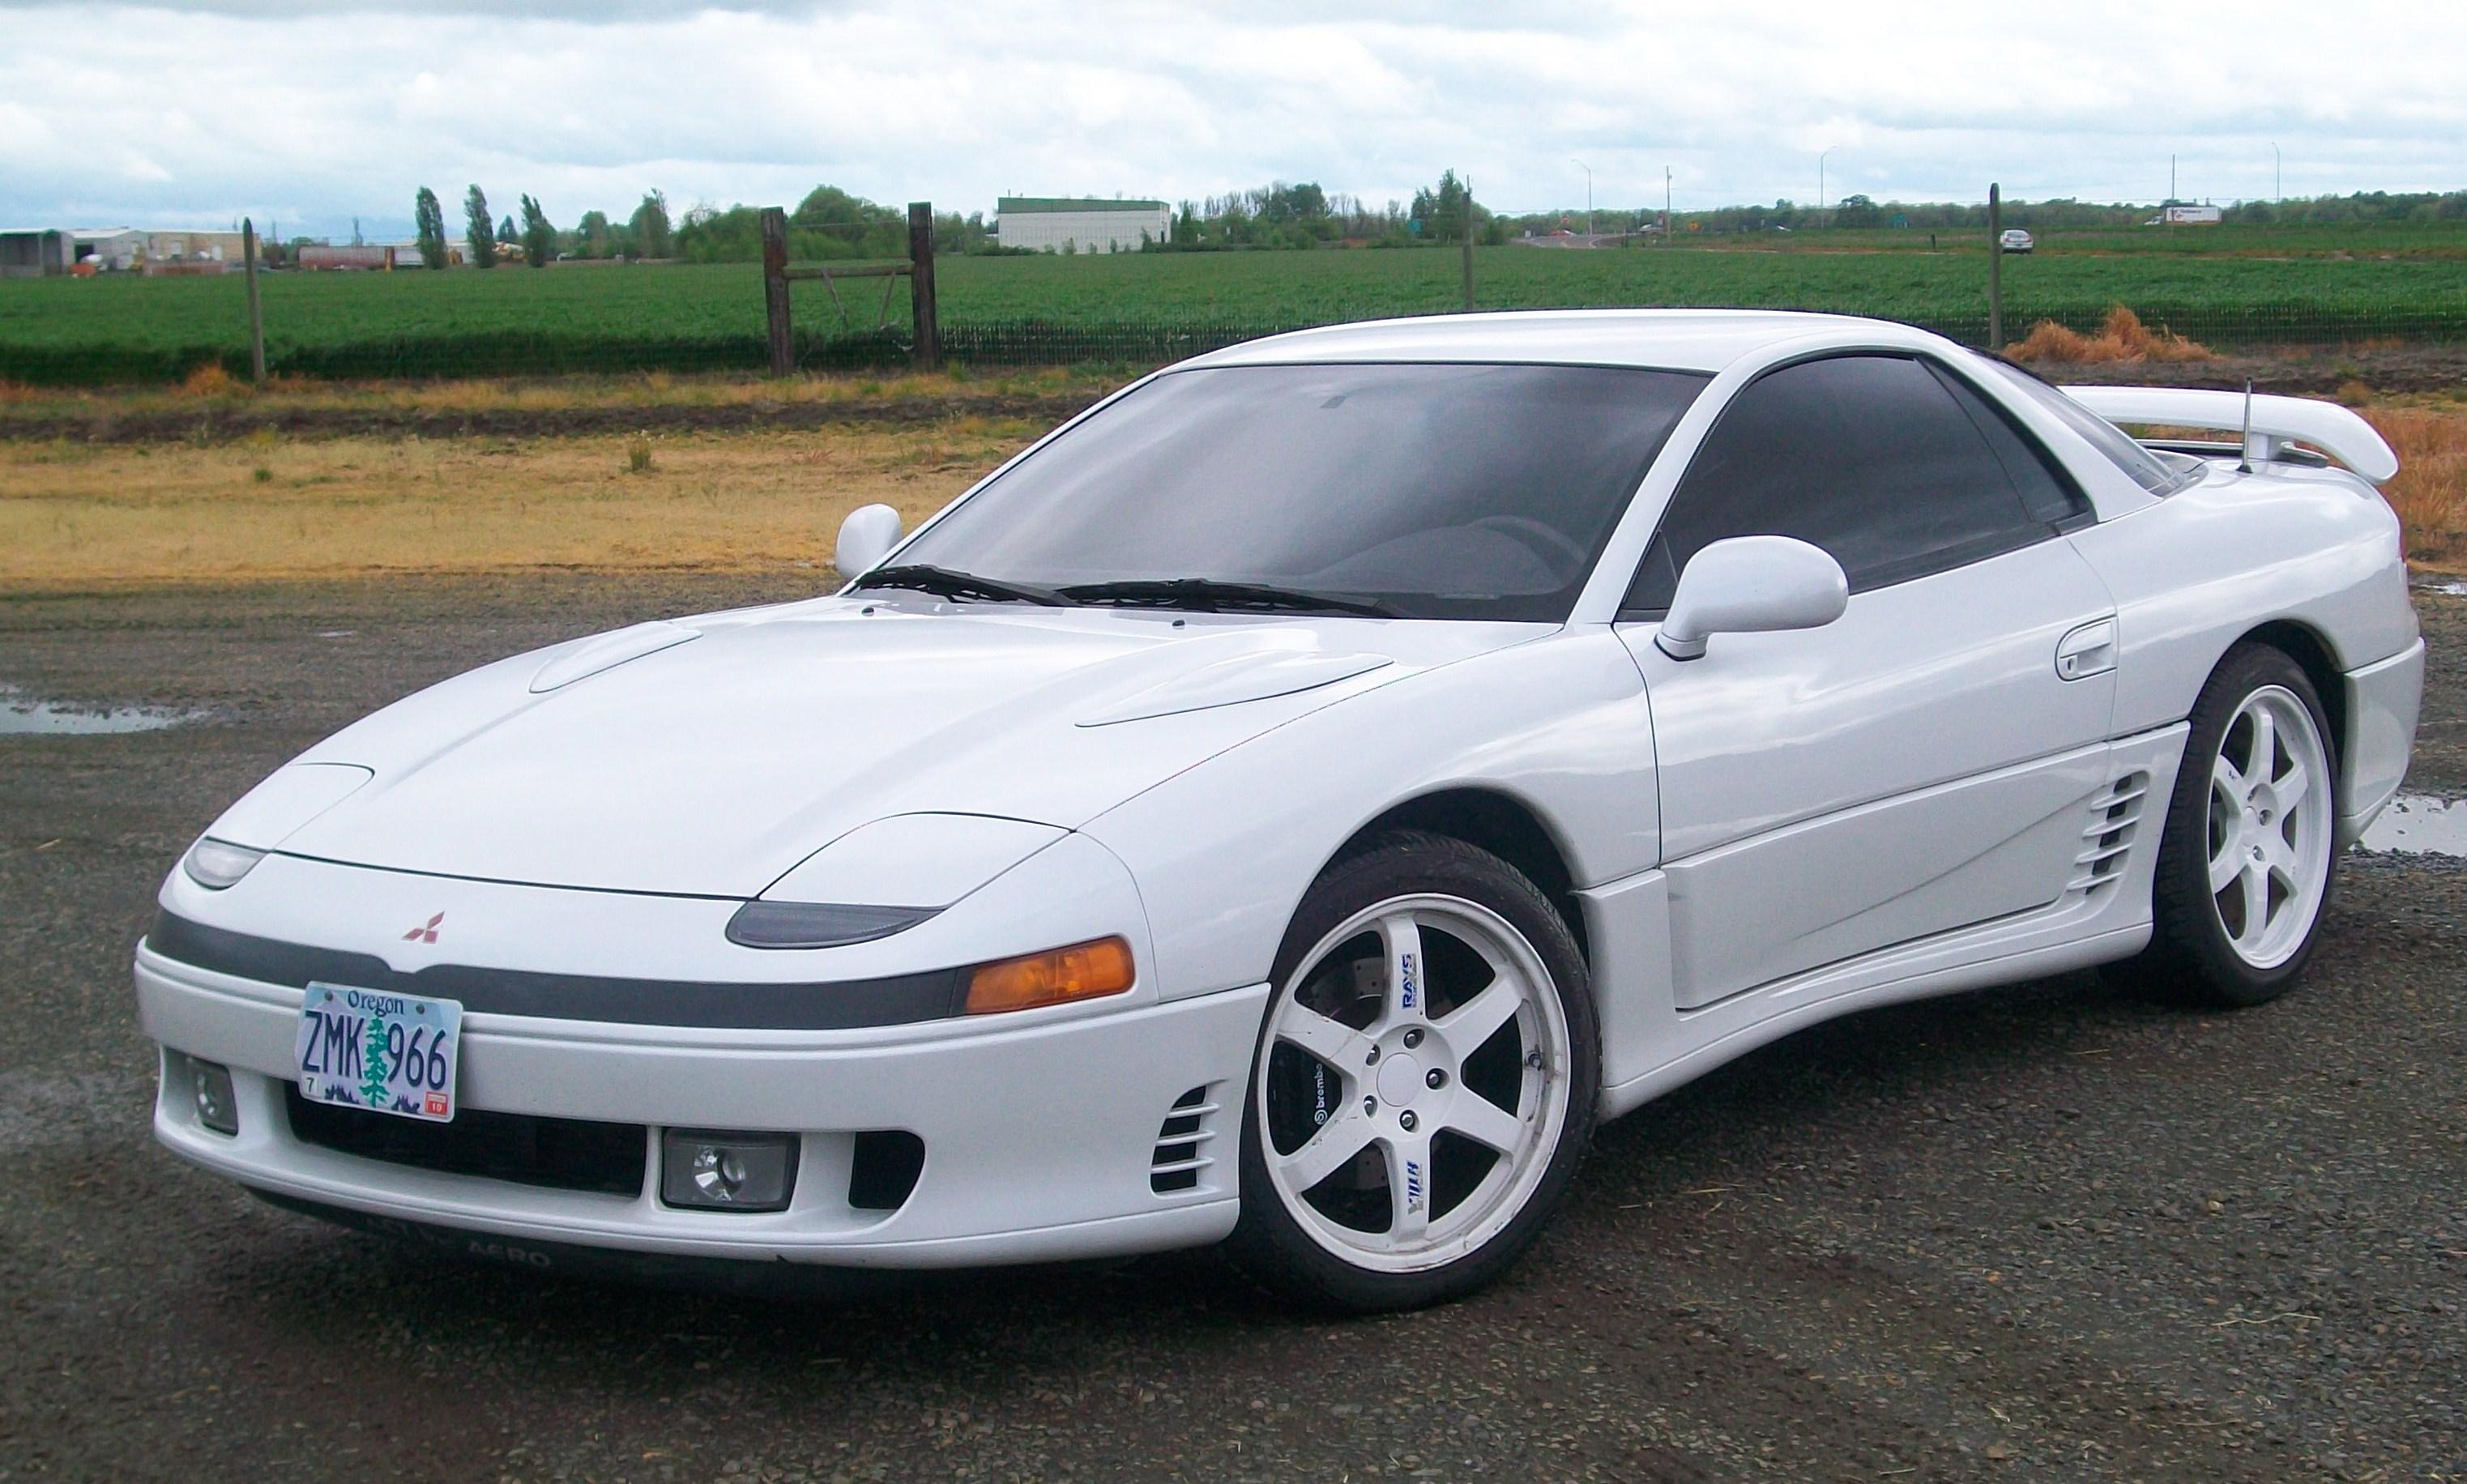 3000gt VR4 1991 Mitsubishi 3000GT Specs, Photos, Modification Info